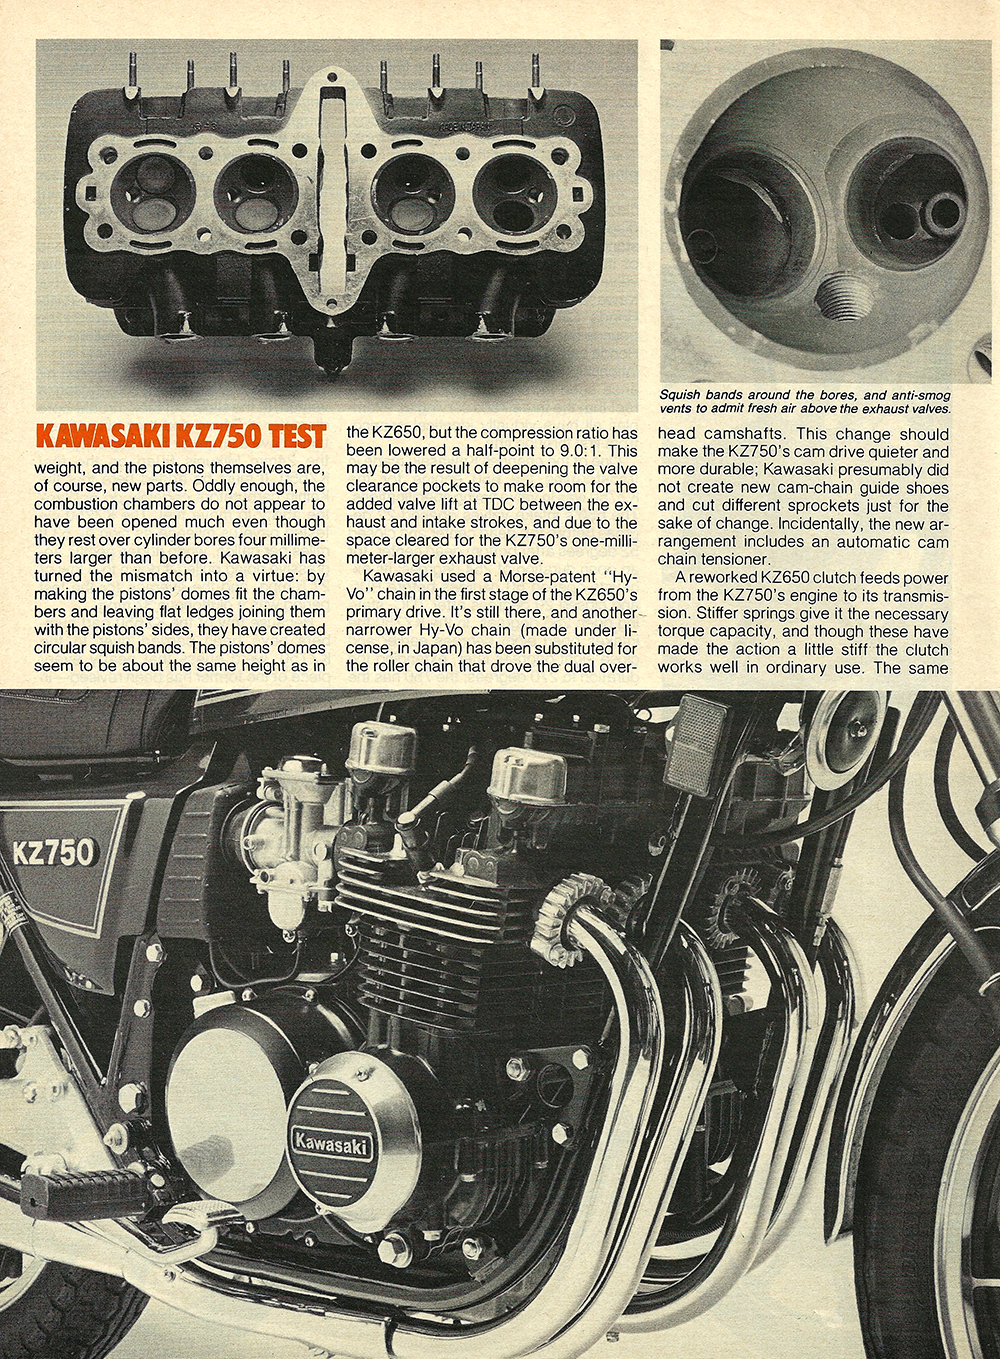 1980 Kawasaki KZ750 road test 05.jpg